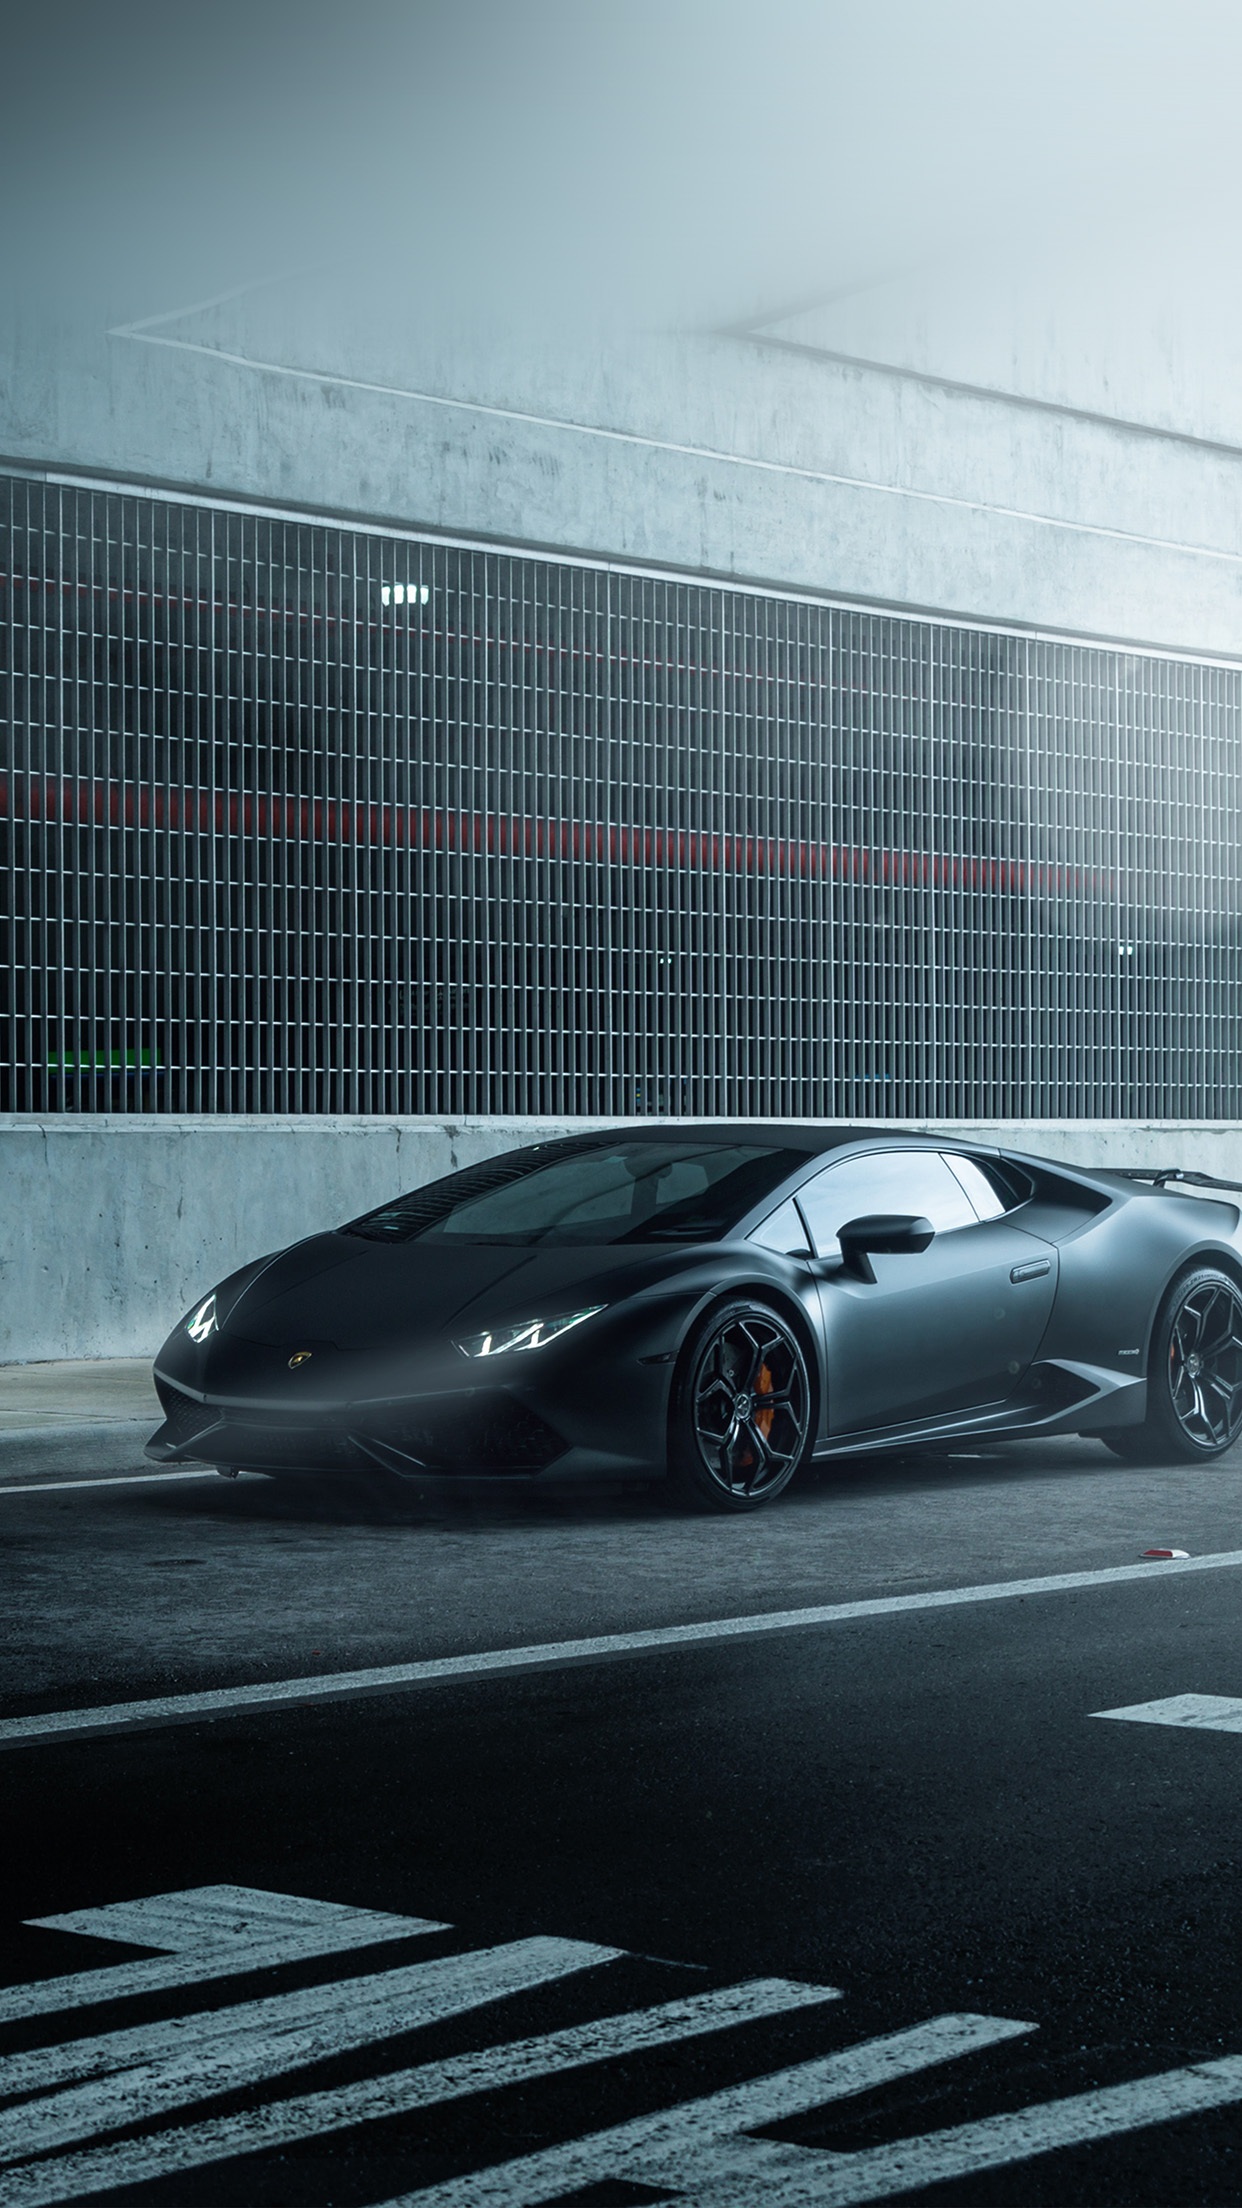 Lamborghini Huracan Wallpaper Iphone 422738 Hd